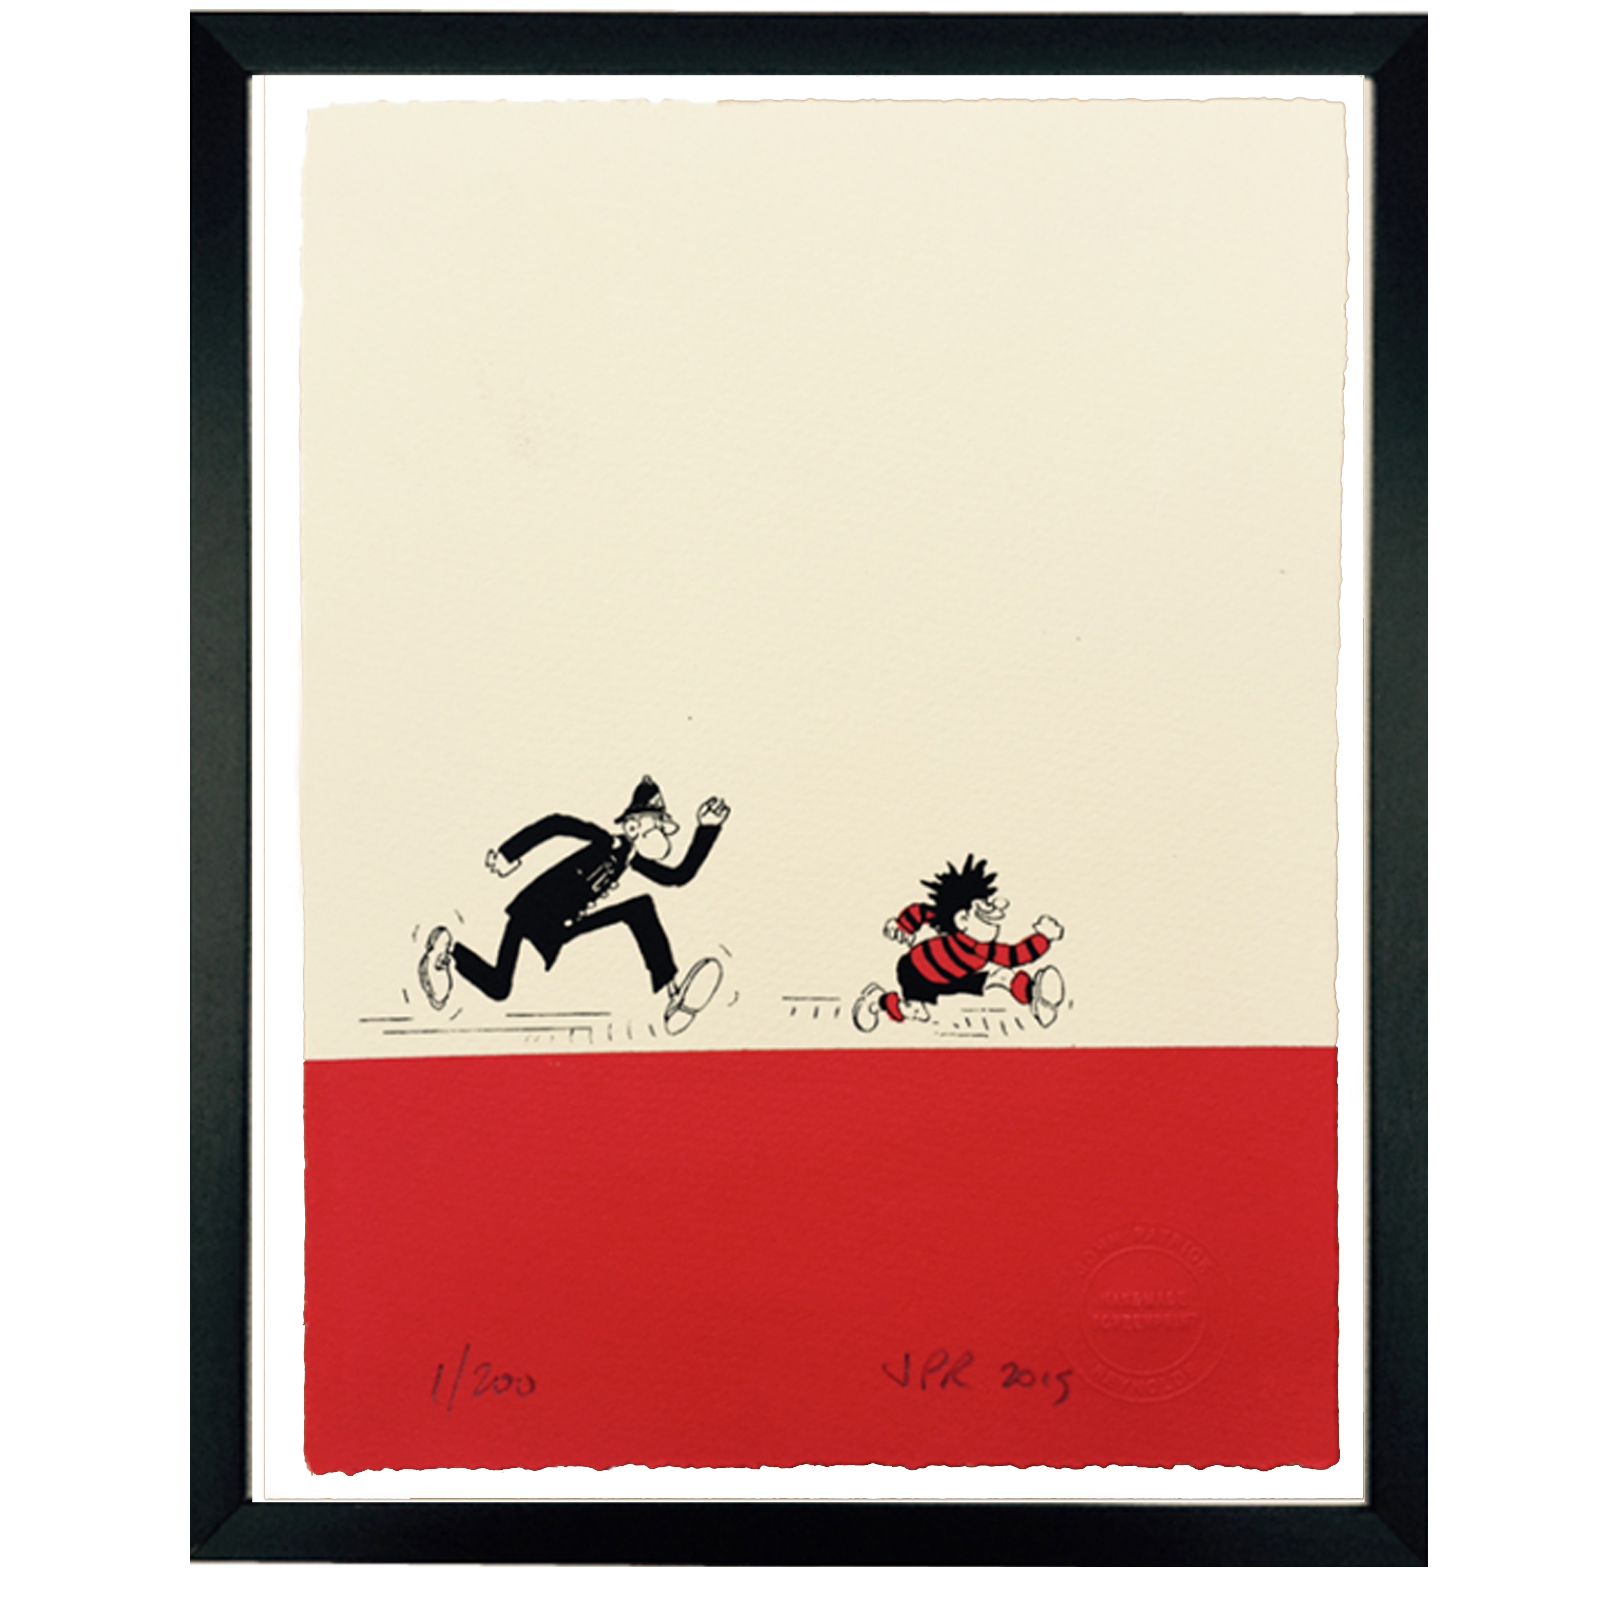 Dennis the Menace and Copper - Limited Edition Screen Print